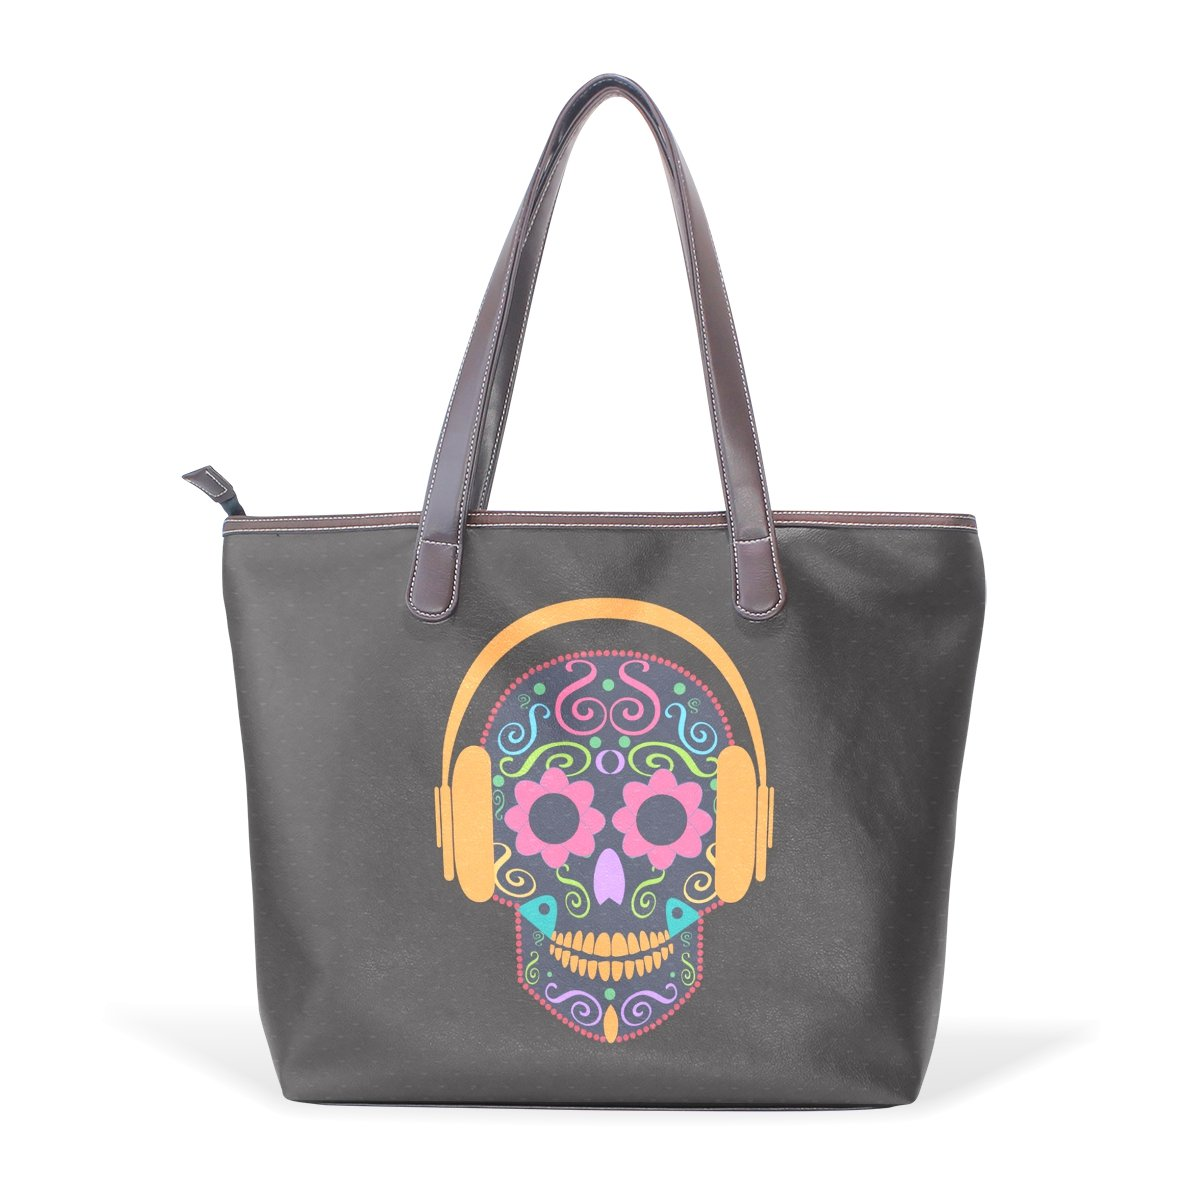 SCDS Wearing Headphones Skulls PU Leather Lady Handbag Tote Bag Zipper Shoulder Bag